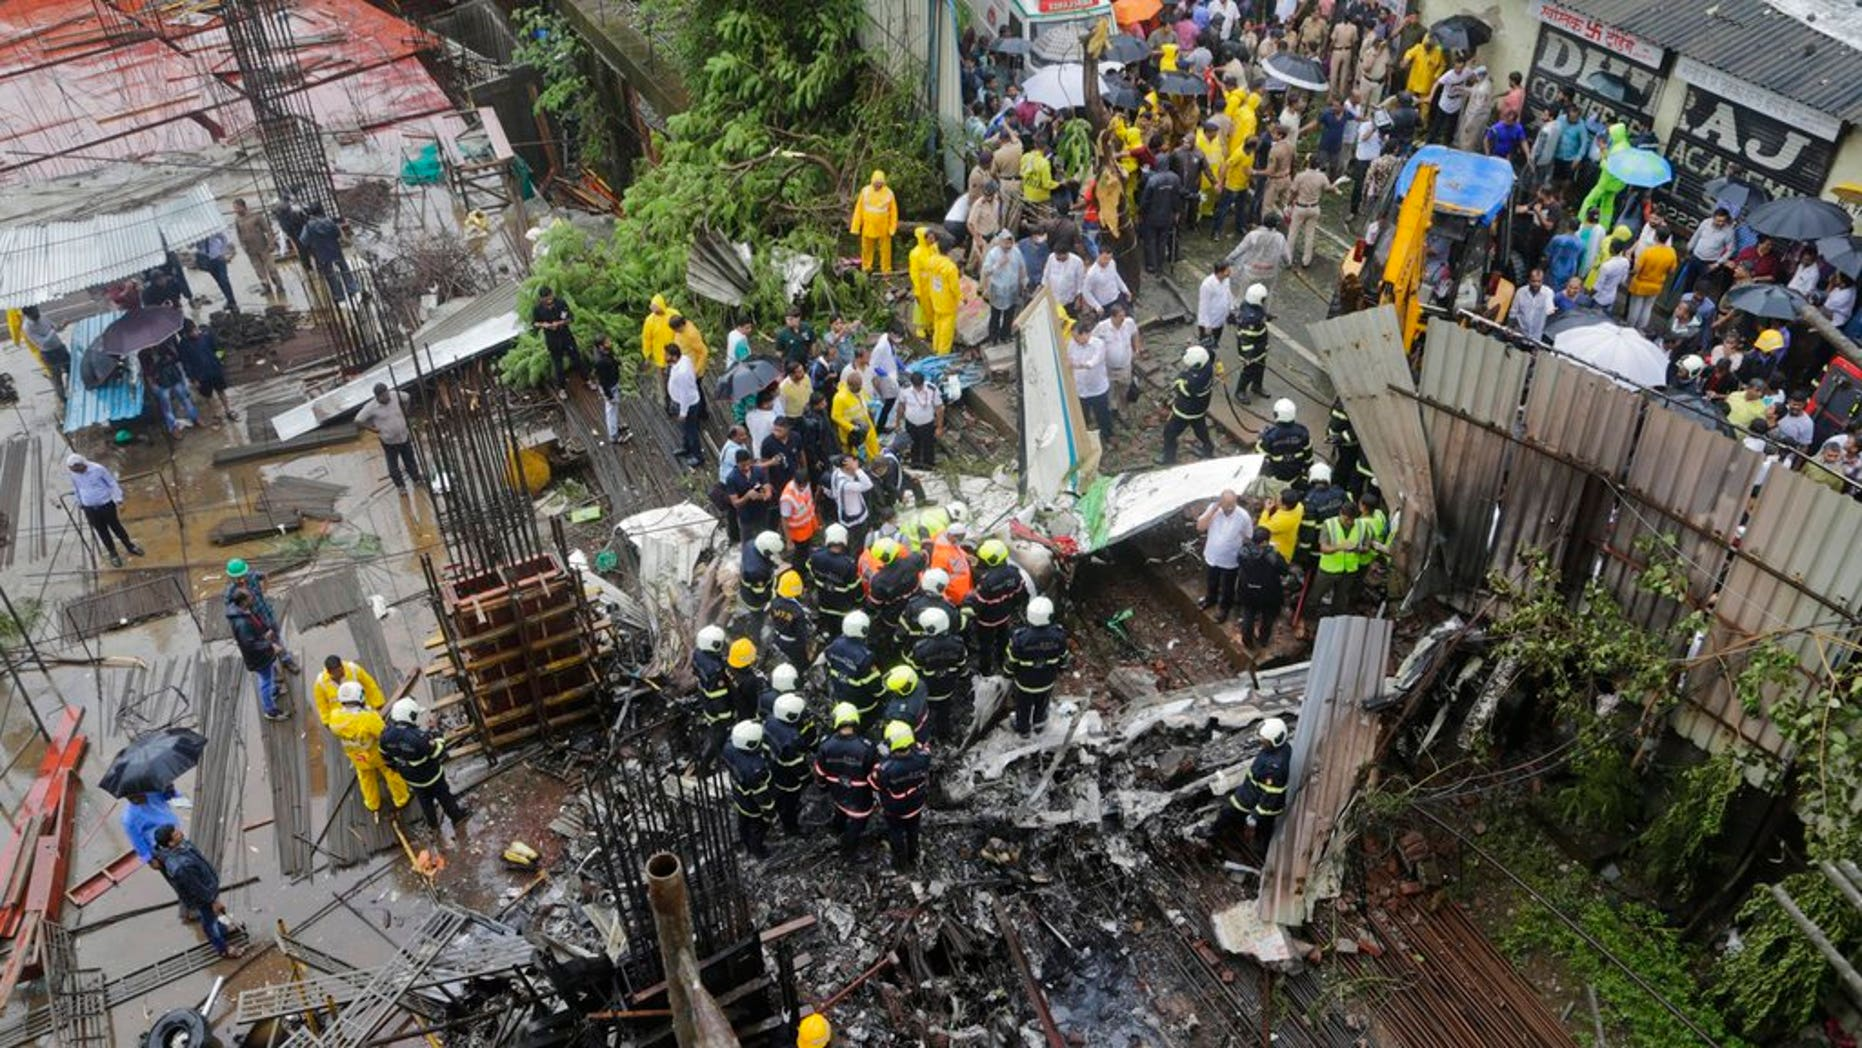 In this June 28, 2018 photo, rescuers stand amid the wreckage of a private chartered plane that crashed in Ghatkopar area, Mumbai, India.